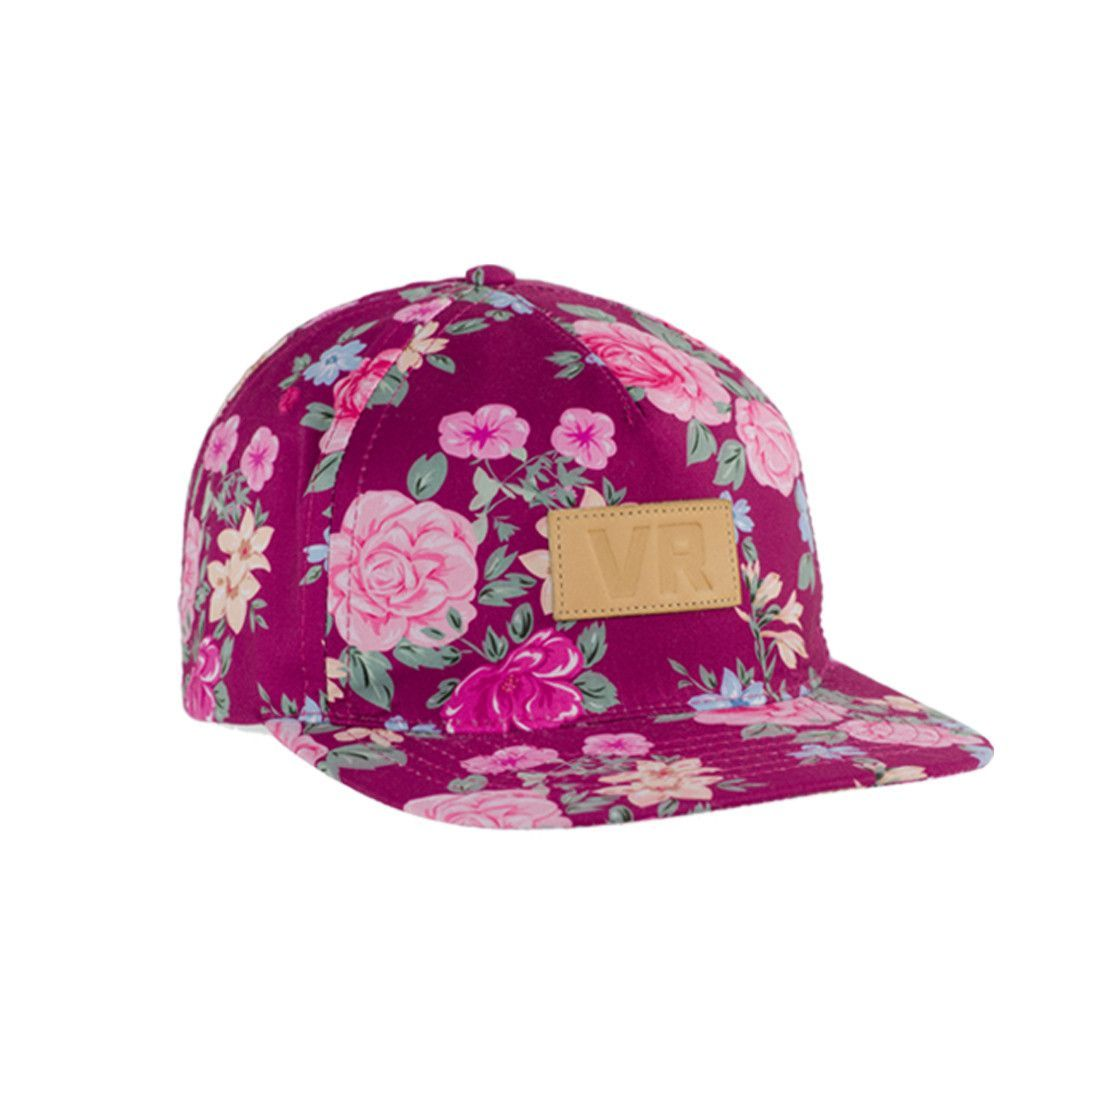 5e056116696 5 Panel snapback - Plastic snap closure - Full custom Macana Black floral  print - VR Genuine Leather debossed patch - 100% soft touch polyester fabric